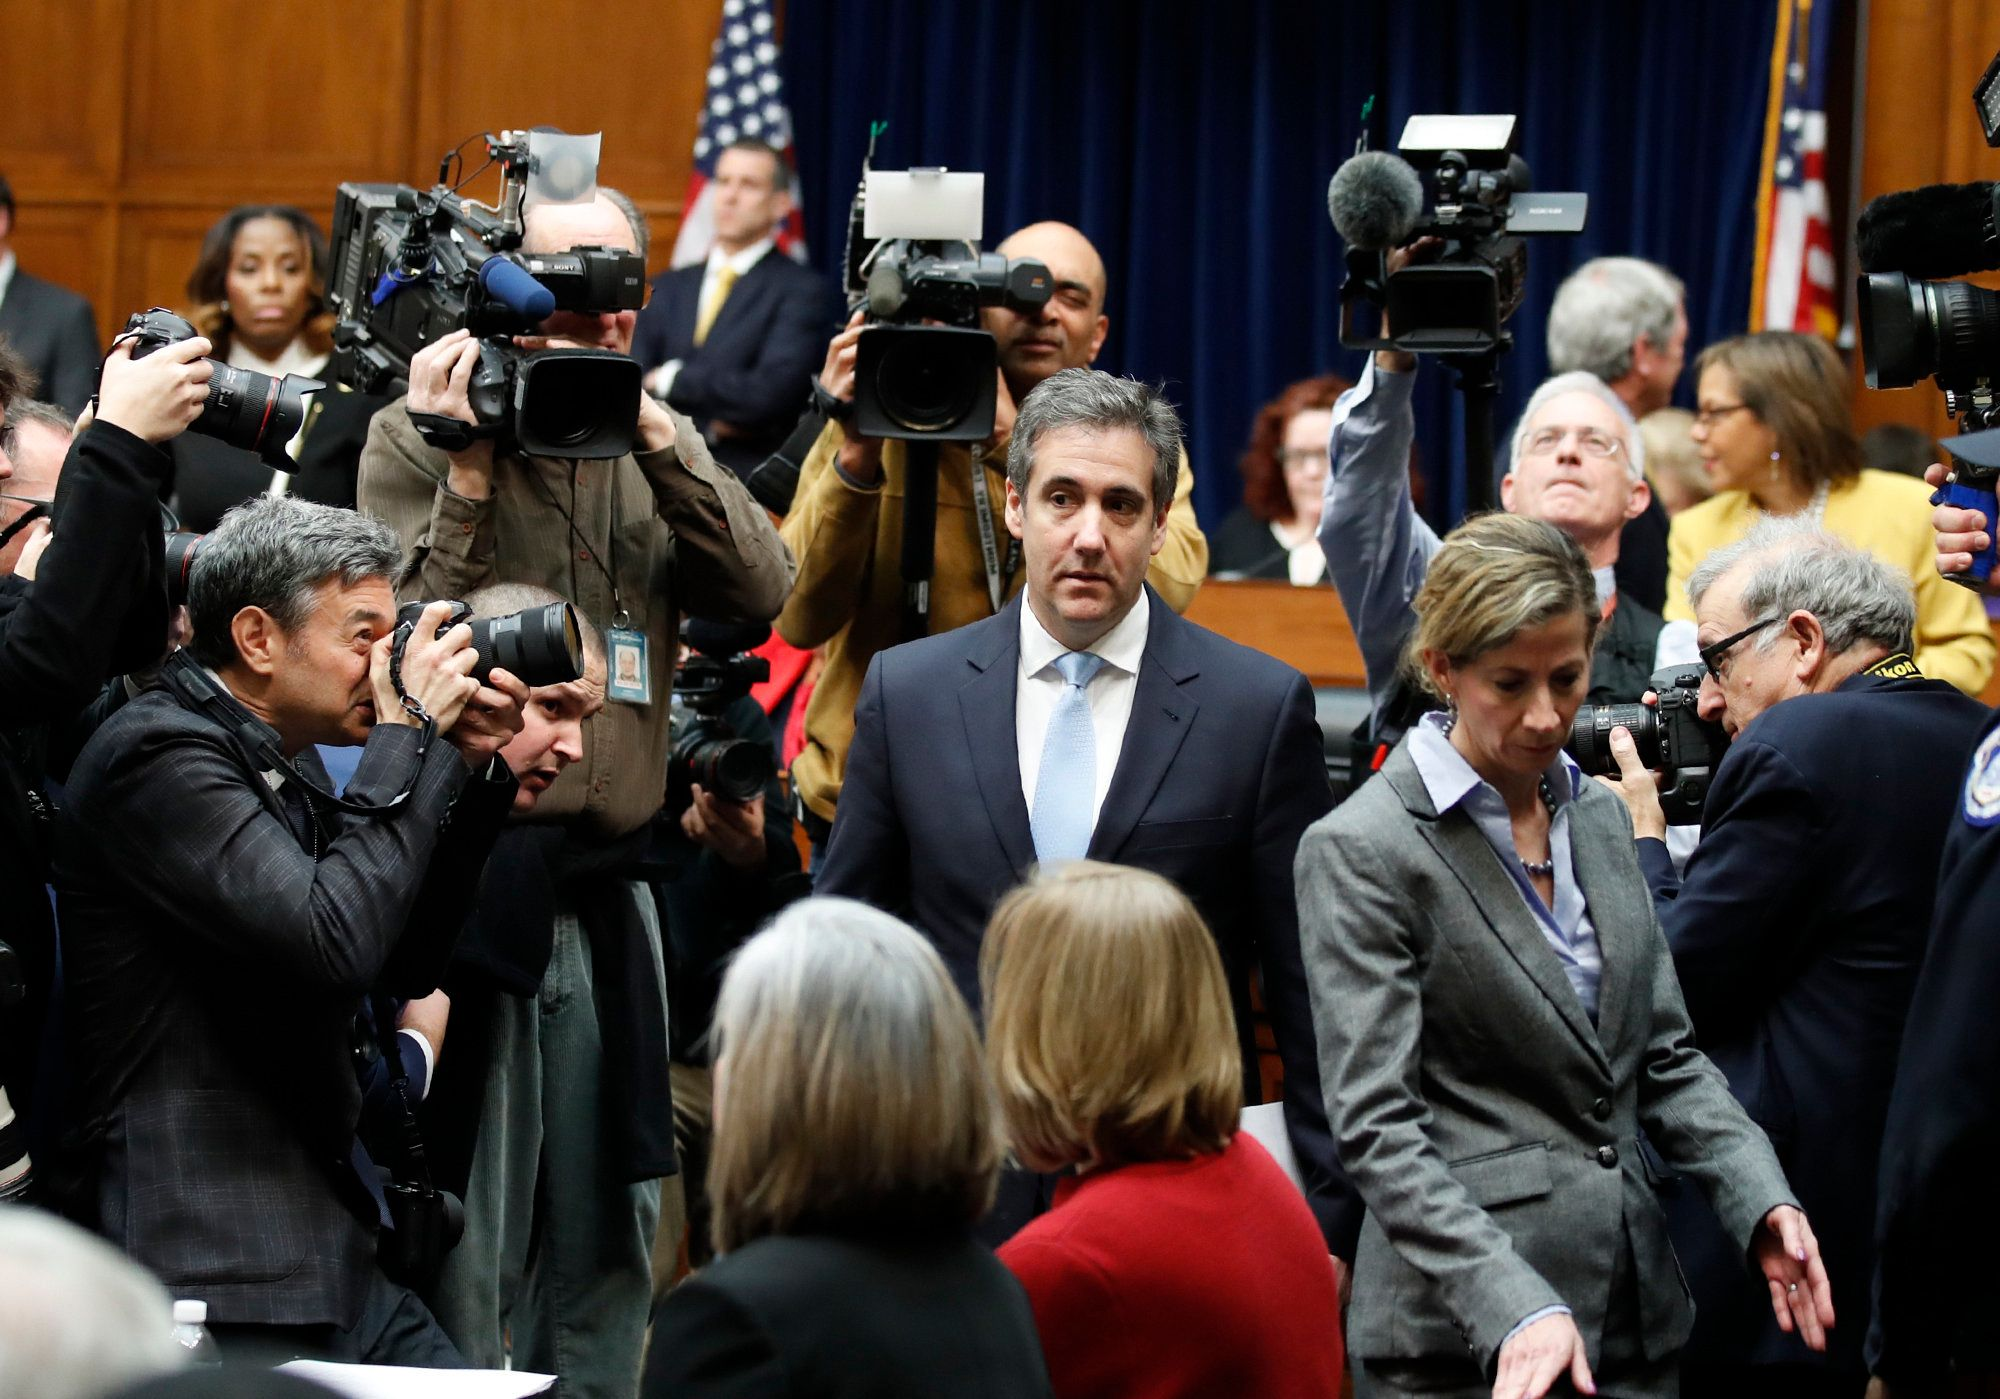 Michael Cohen, President Donald Trump's former personal lawyer, arrives to testify before the House Oversight and Reform Committee on Capitol Hill, Wednesday, Feb. 27, 2019, in Washington. (AP Photo/Alex Brandon)